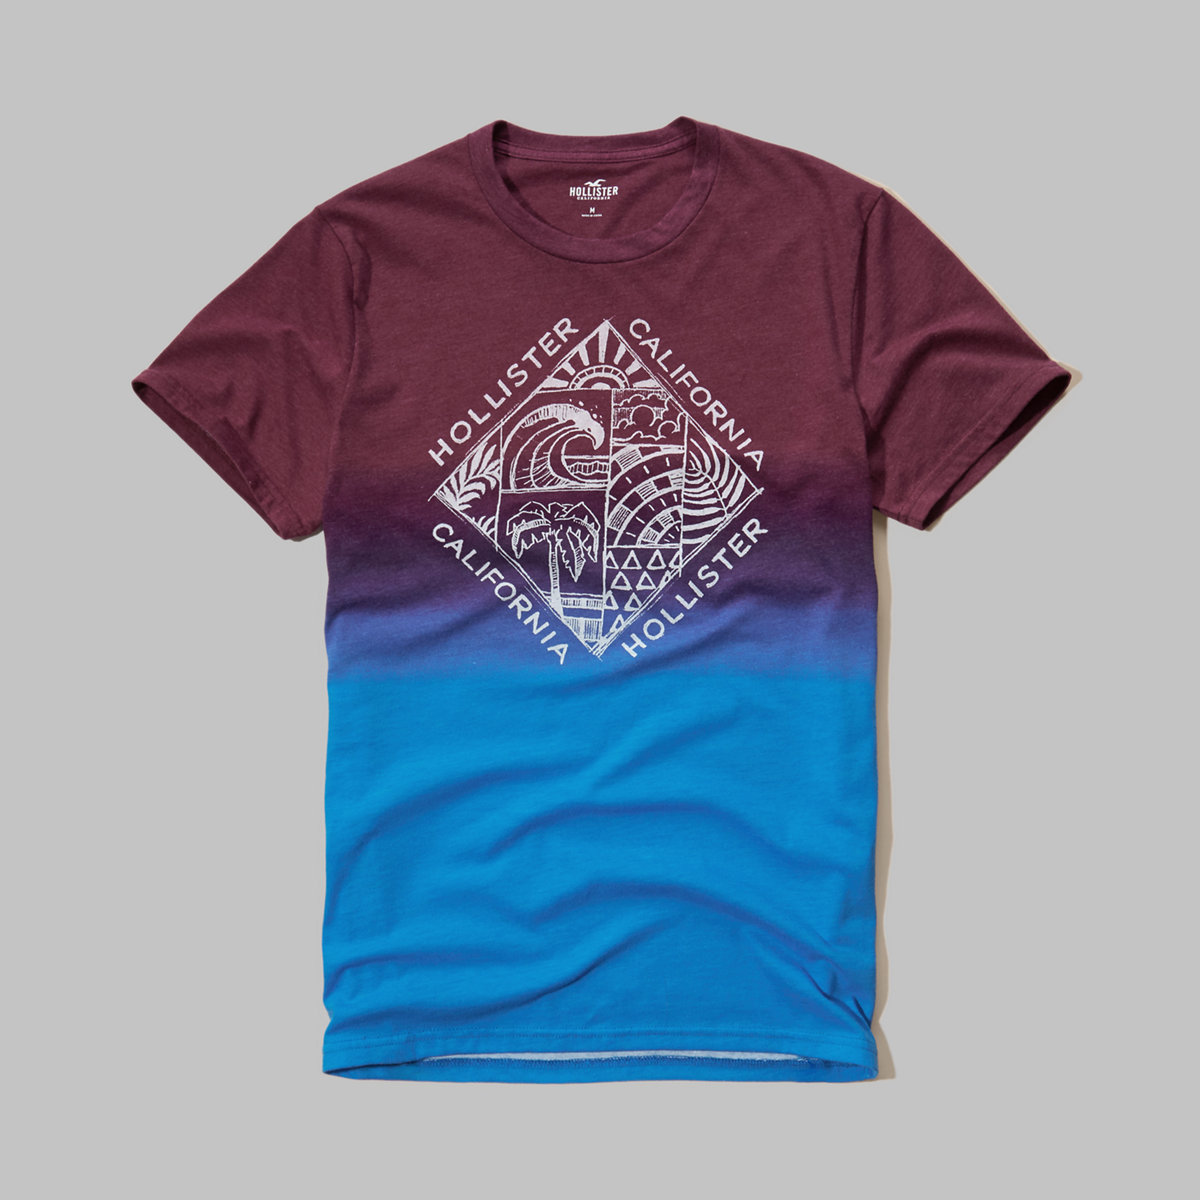 Wash Effect Graphic Tee